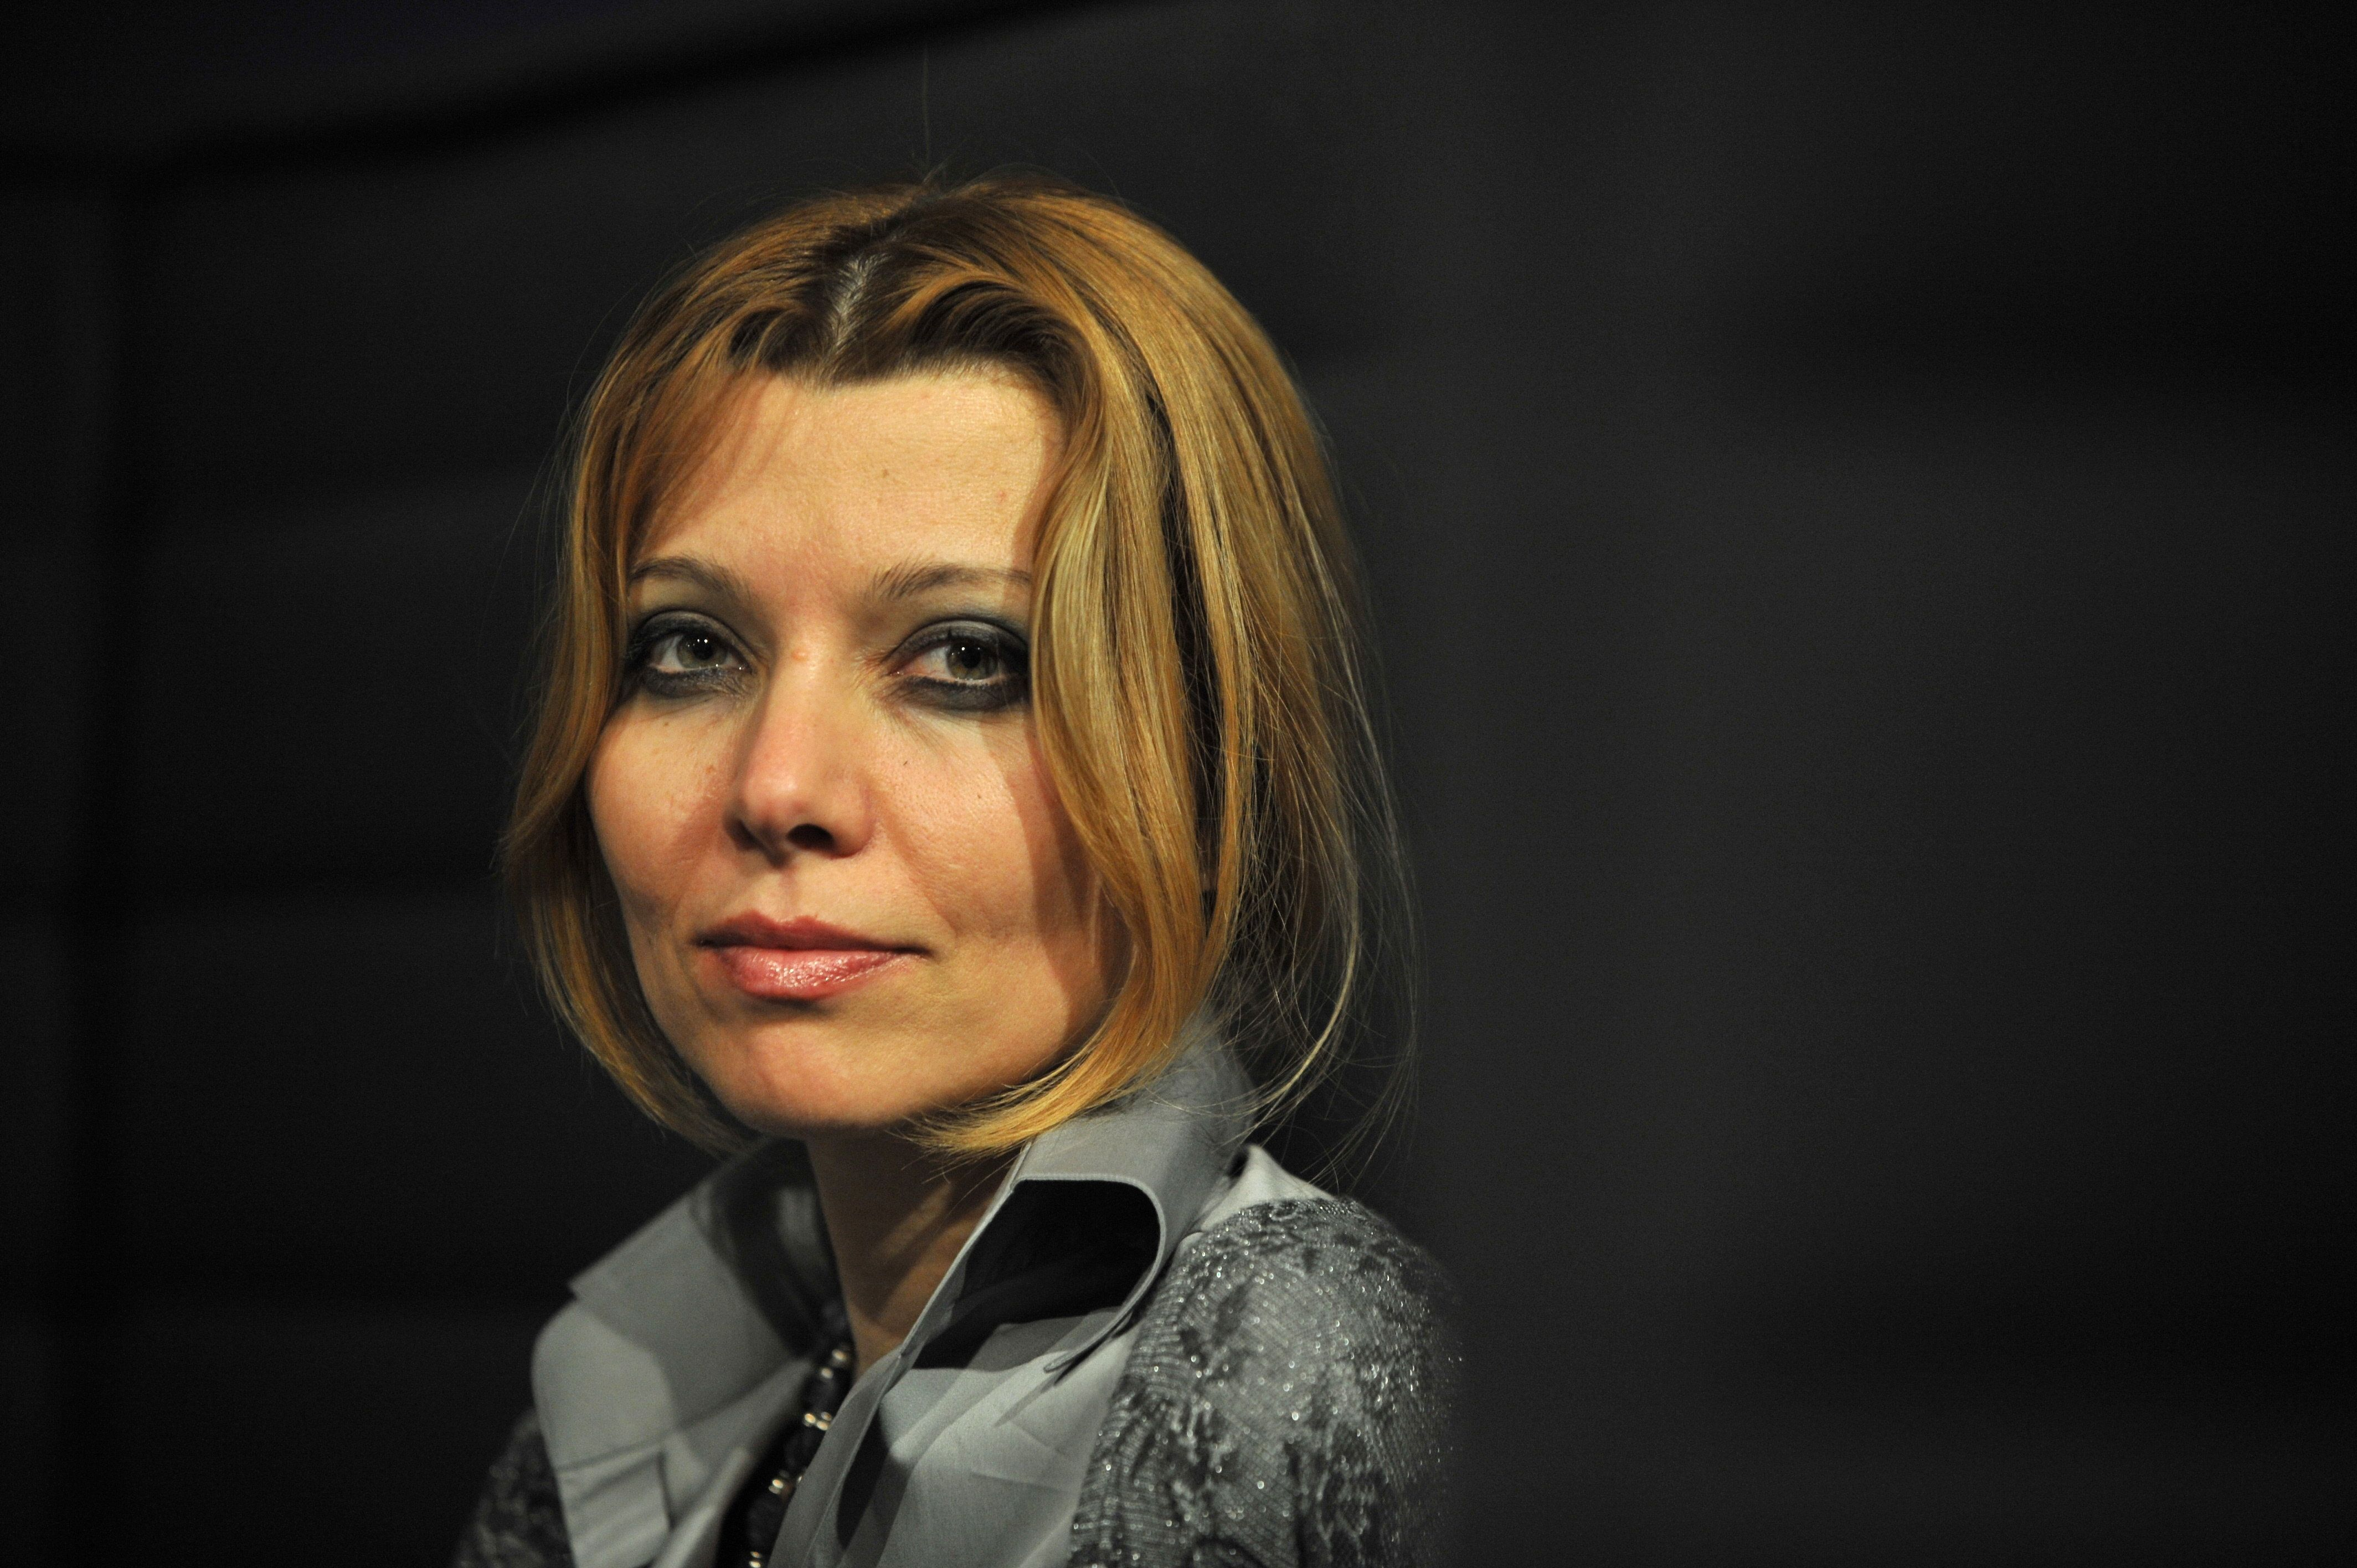 Turkish writer Elif shafak, author of 'Black Milk' poses during the  5th edition of the Women's Forum at the Deauville International Center on October 16, 2009.  AFP PHOTO MYCHELE DANIAU (Photo credit should read MYCHELE DANIAU/AFP/Getty Images)